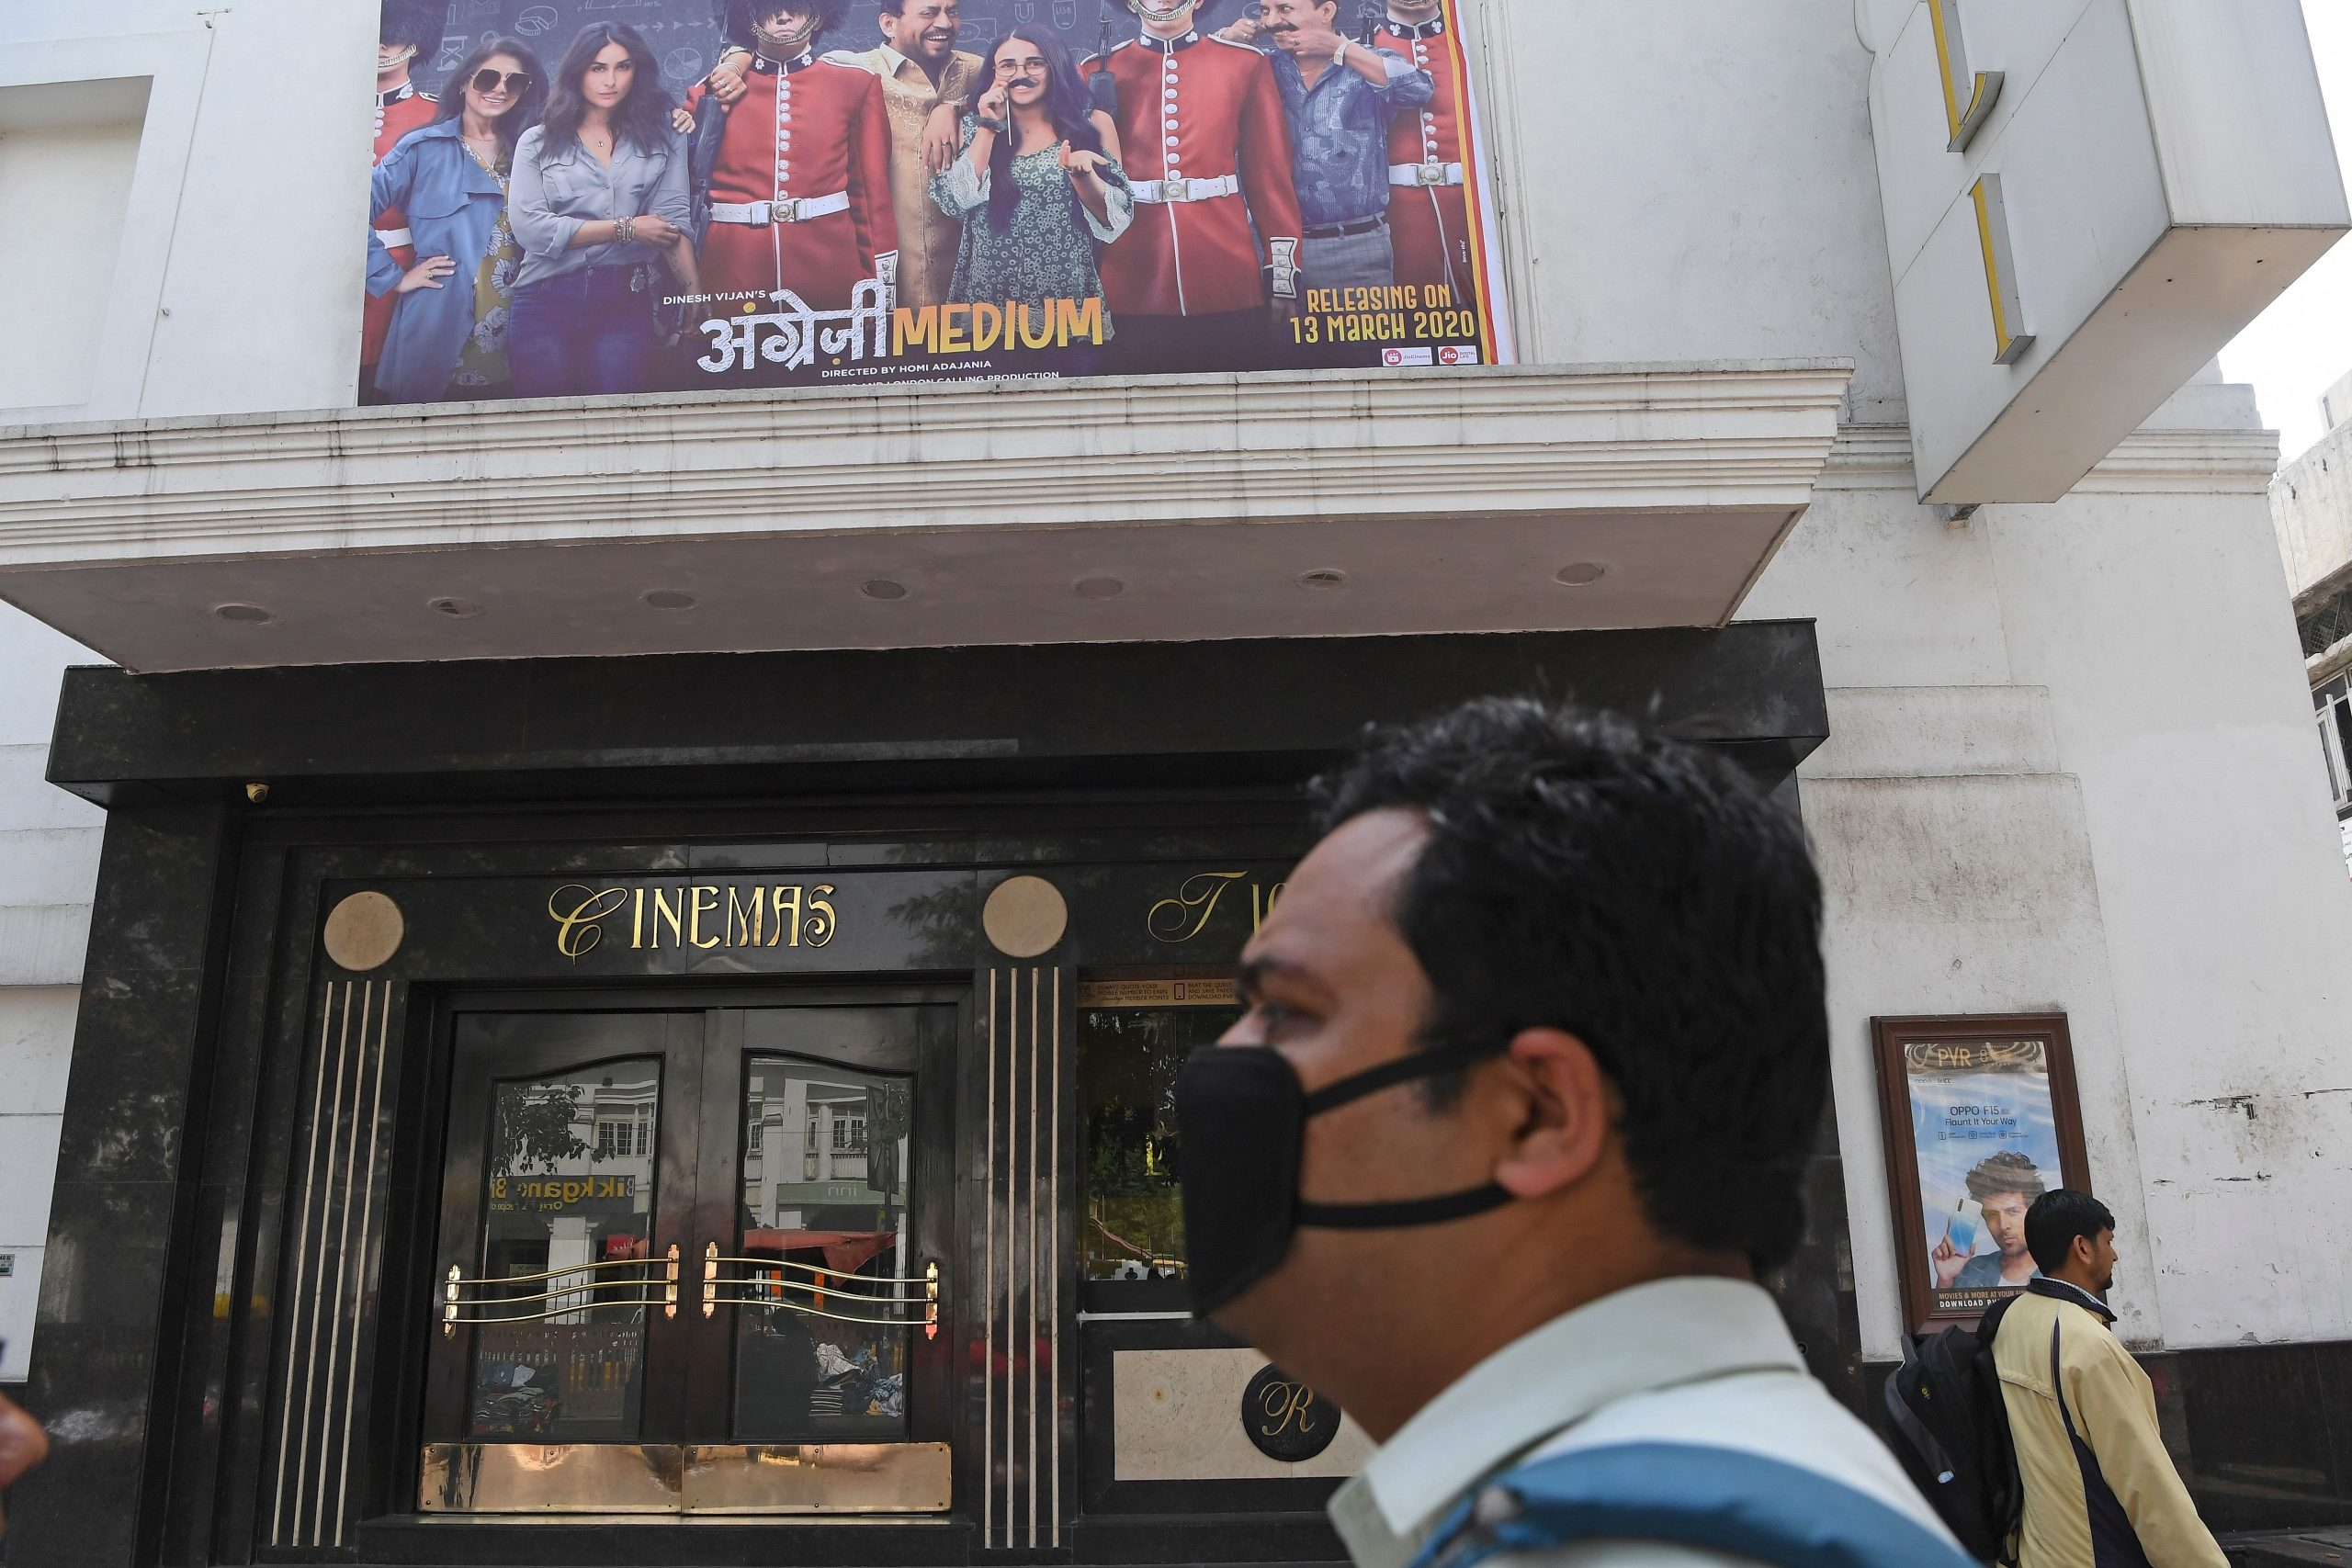 A man wearing a facemask amid concerns of the spread of the COVID-19 coronavirus, walks pasts the closed Rivoli cinema complex in New Delhi on March 13, 2020. - India on March 12 reported its first coronavirus death as authorities ordered schools, theatres and cinemas closed in New Delhi for the rest of the month in a bid to keep the pandemic at bay. (Photo by Prakash SINGH / AFP) (Photo by PRAKASH SINGH/AFP via Getty Images)